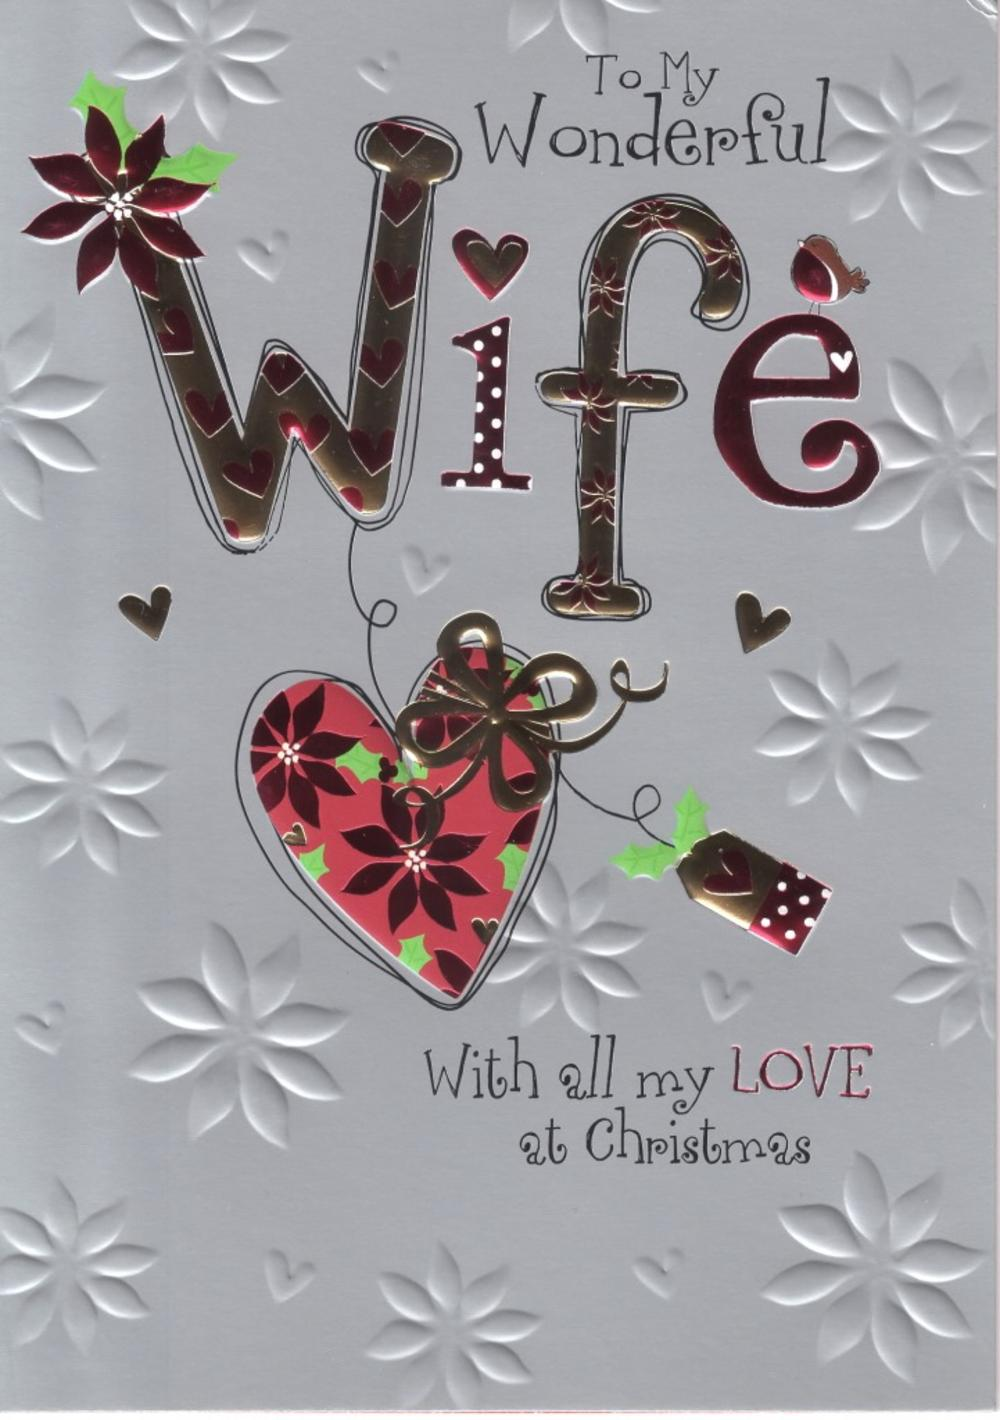 To My Wonderful Wife Christmas Card Cards Love Kates